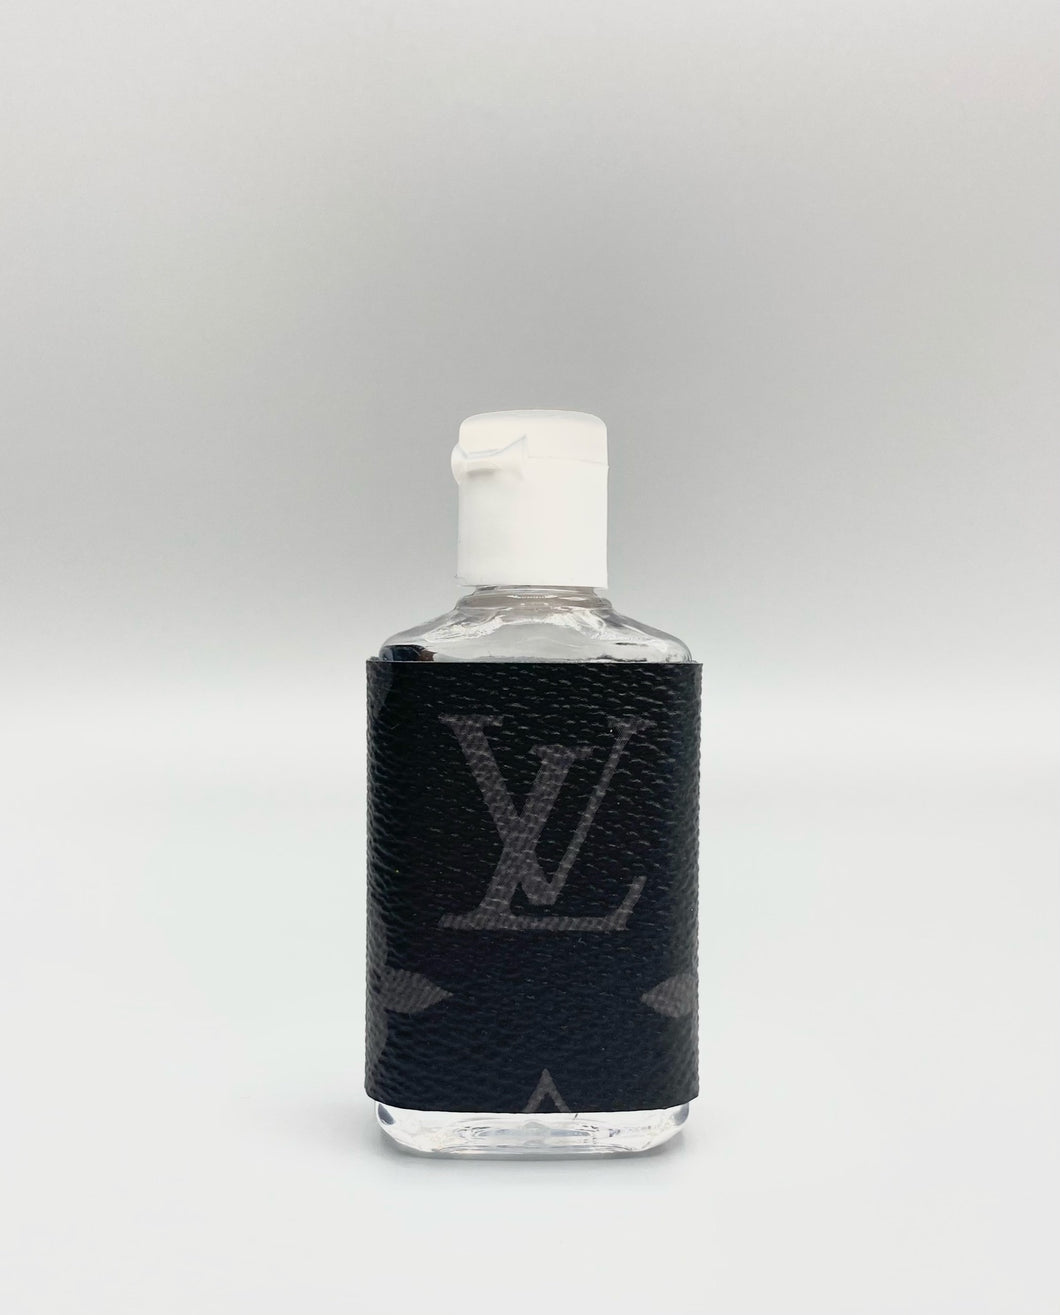 Black Monogram Sanitizer